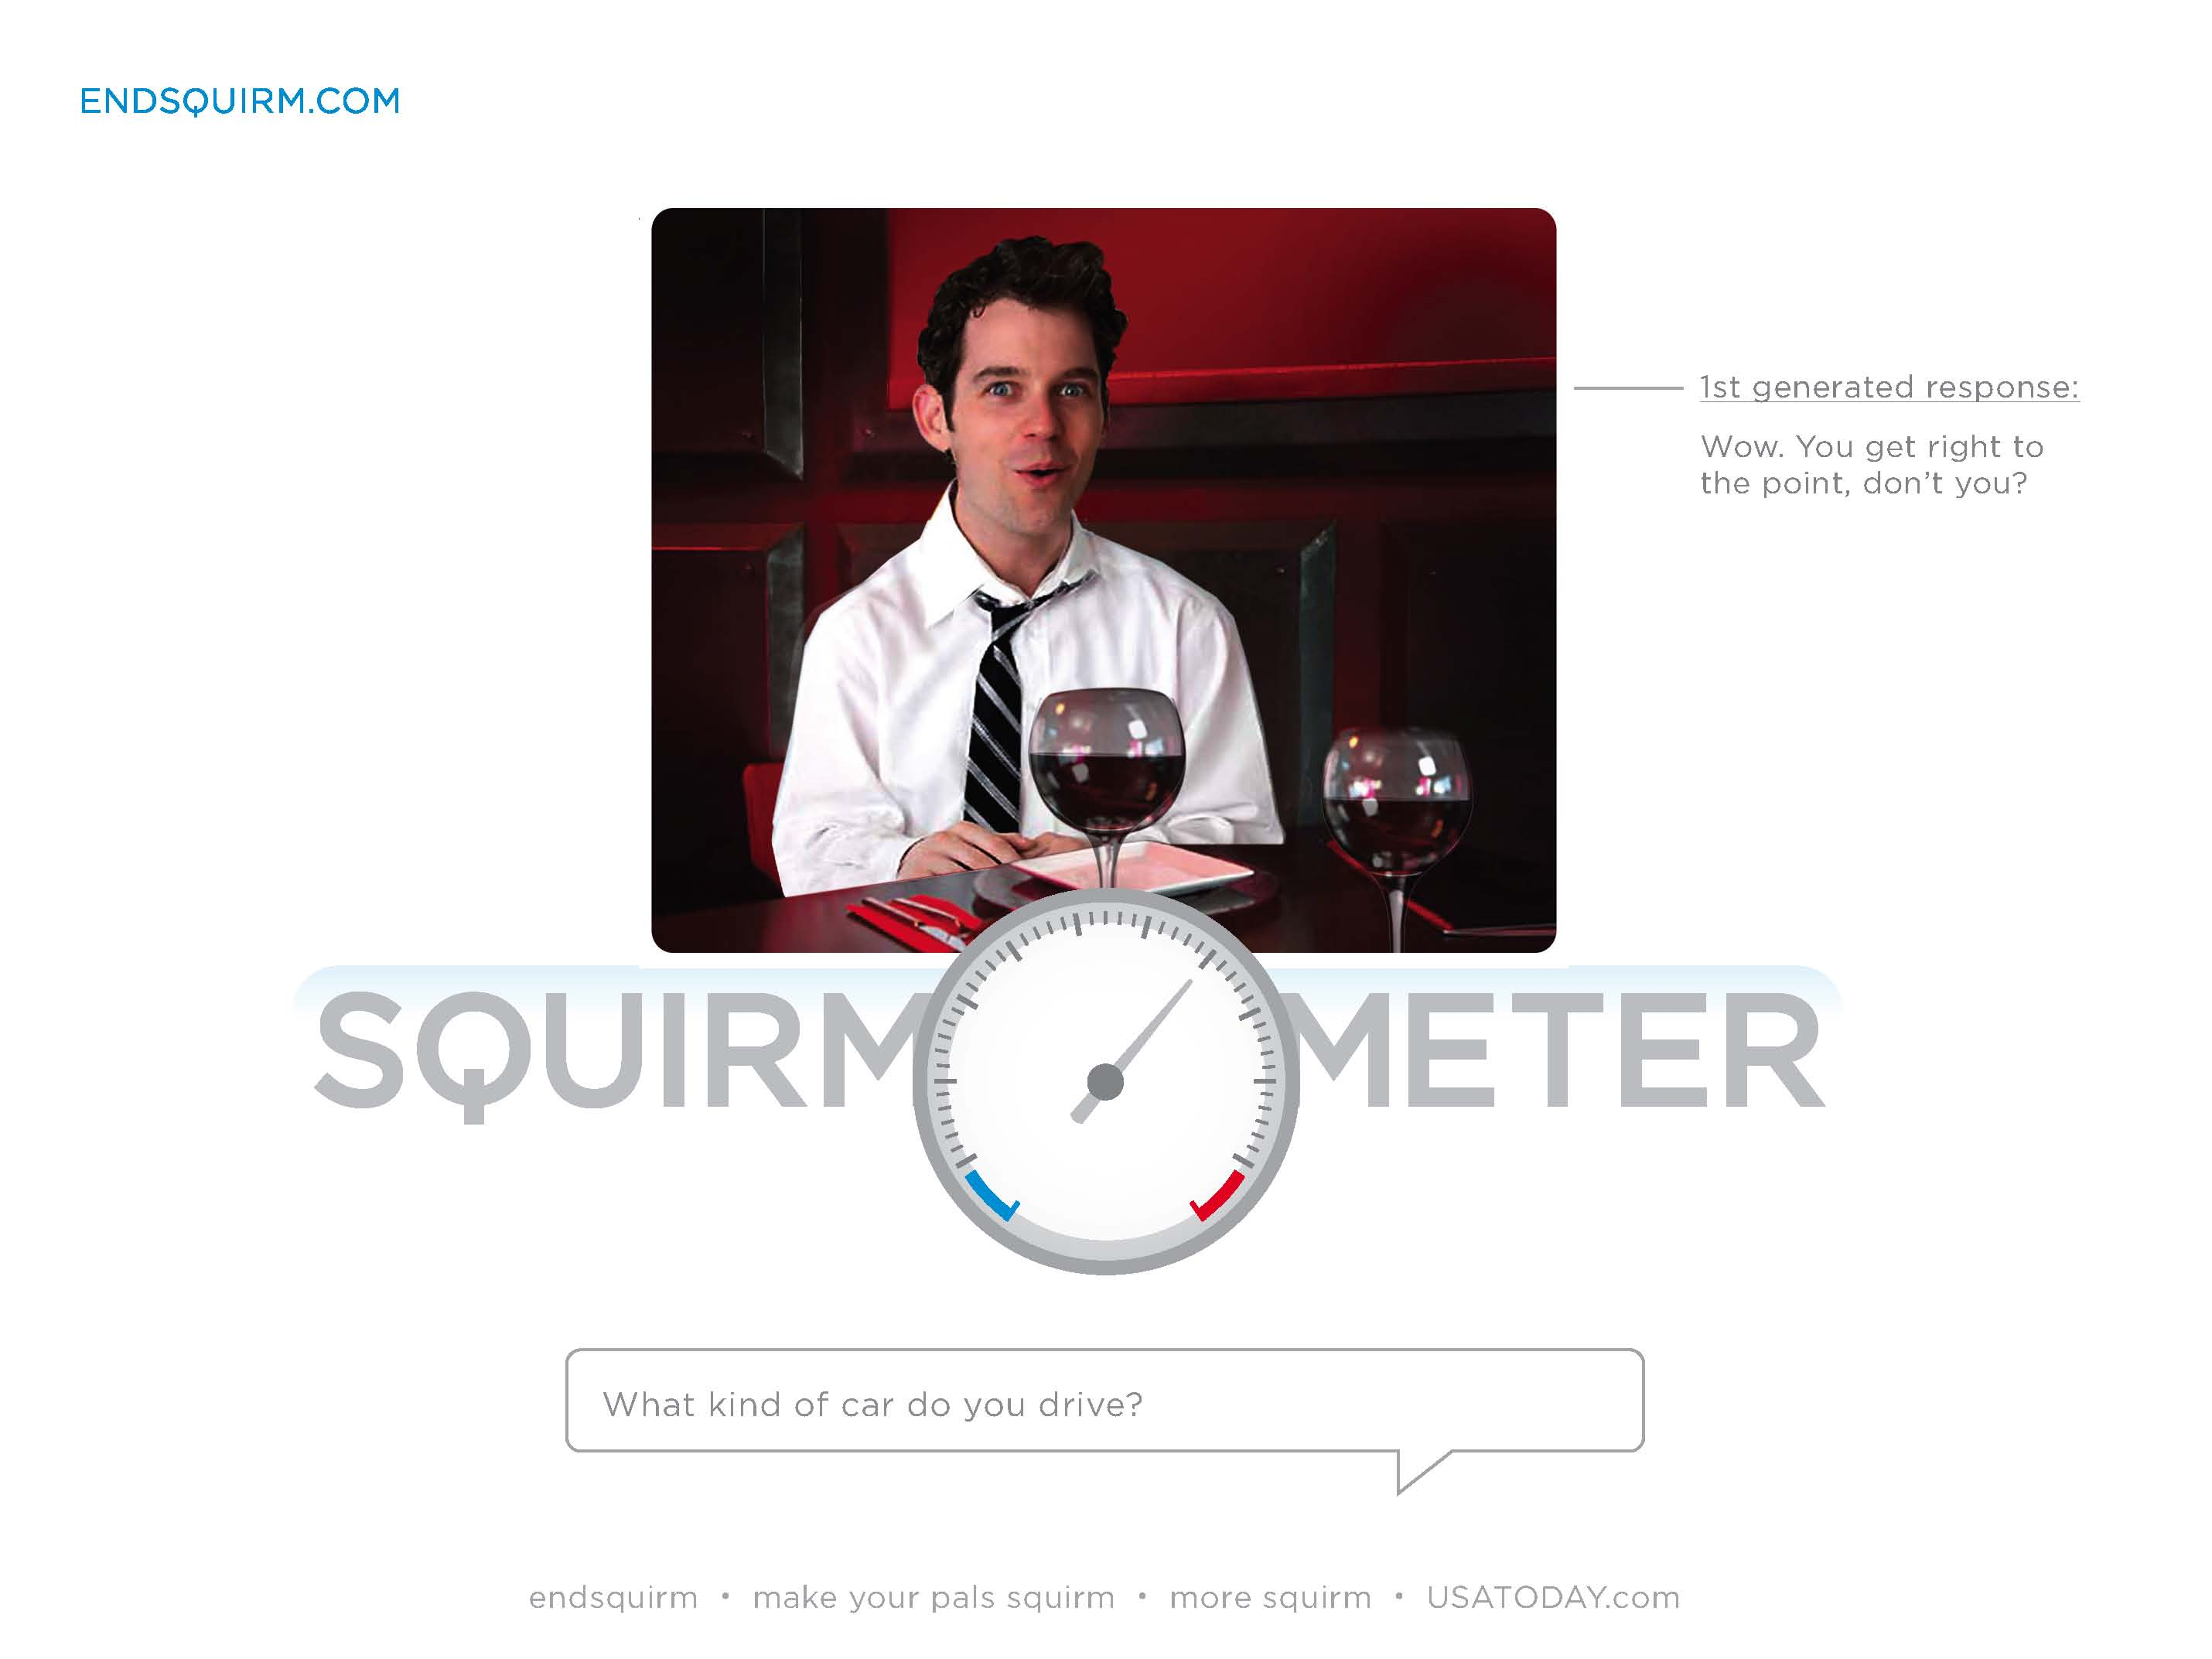 Based on your answers, the squirmometer moves and auto-generated responses via the character are given.